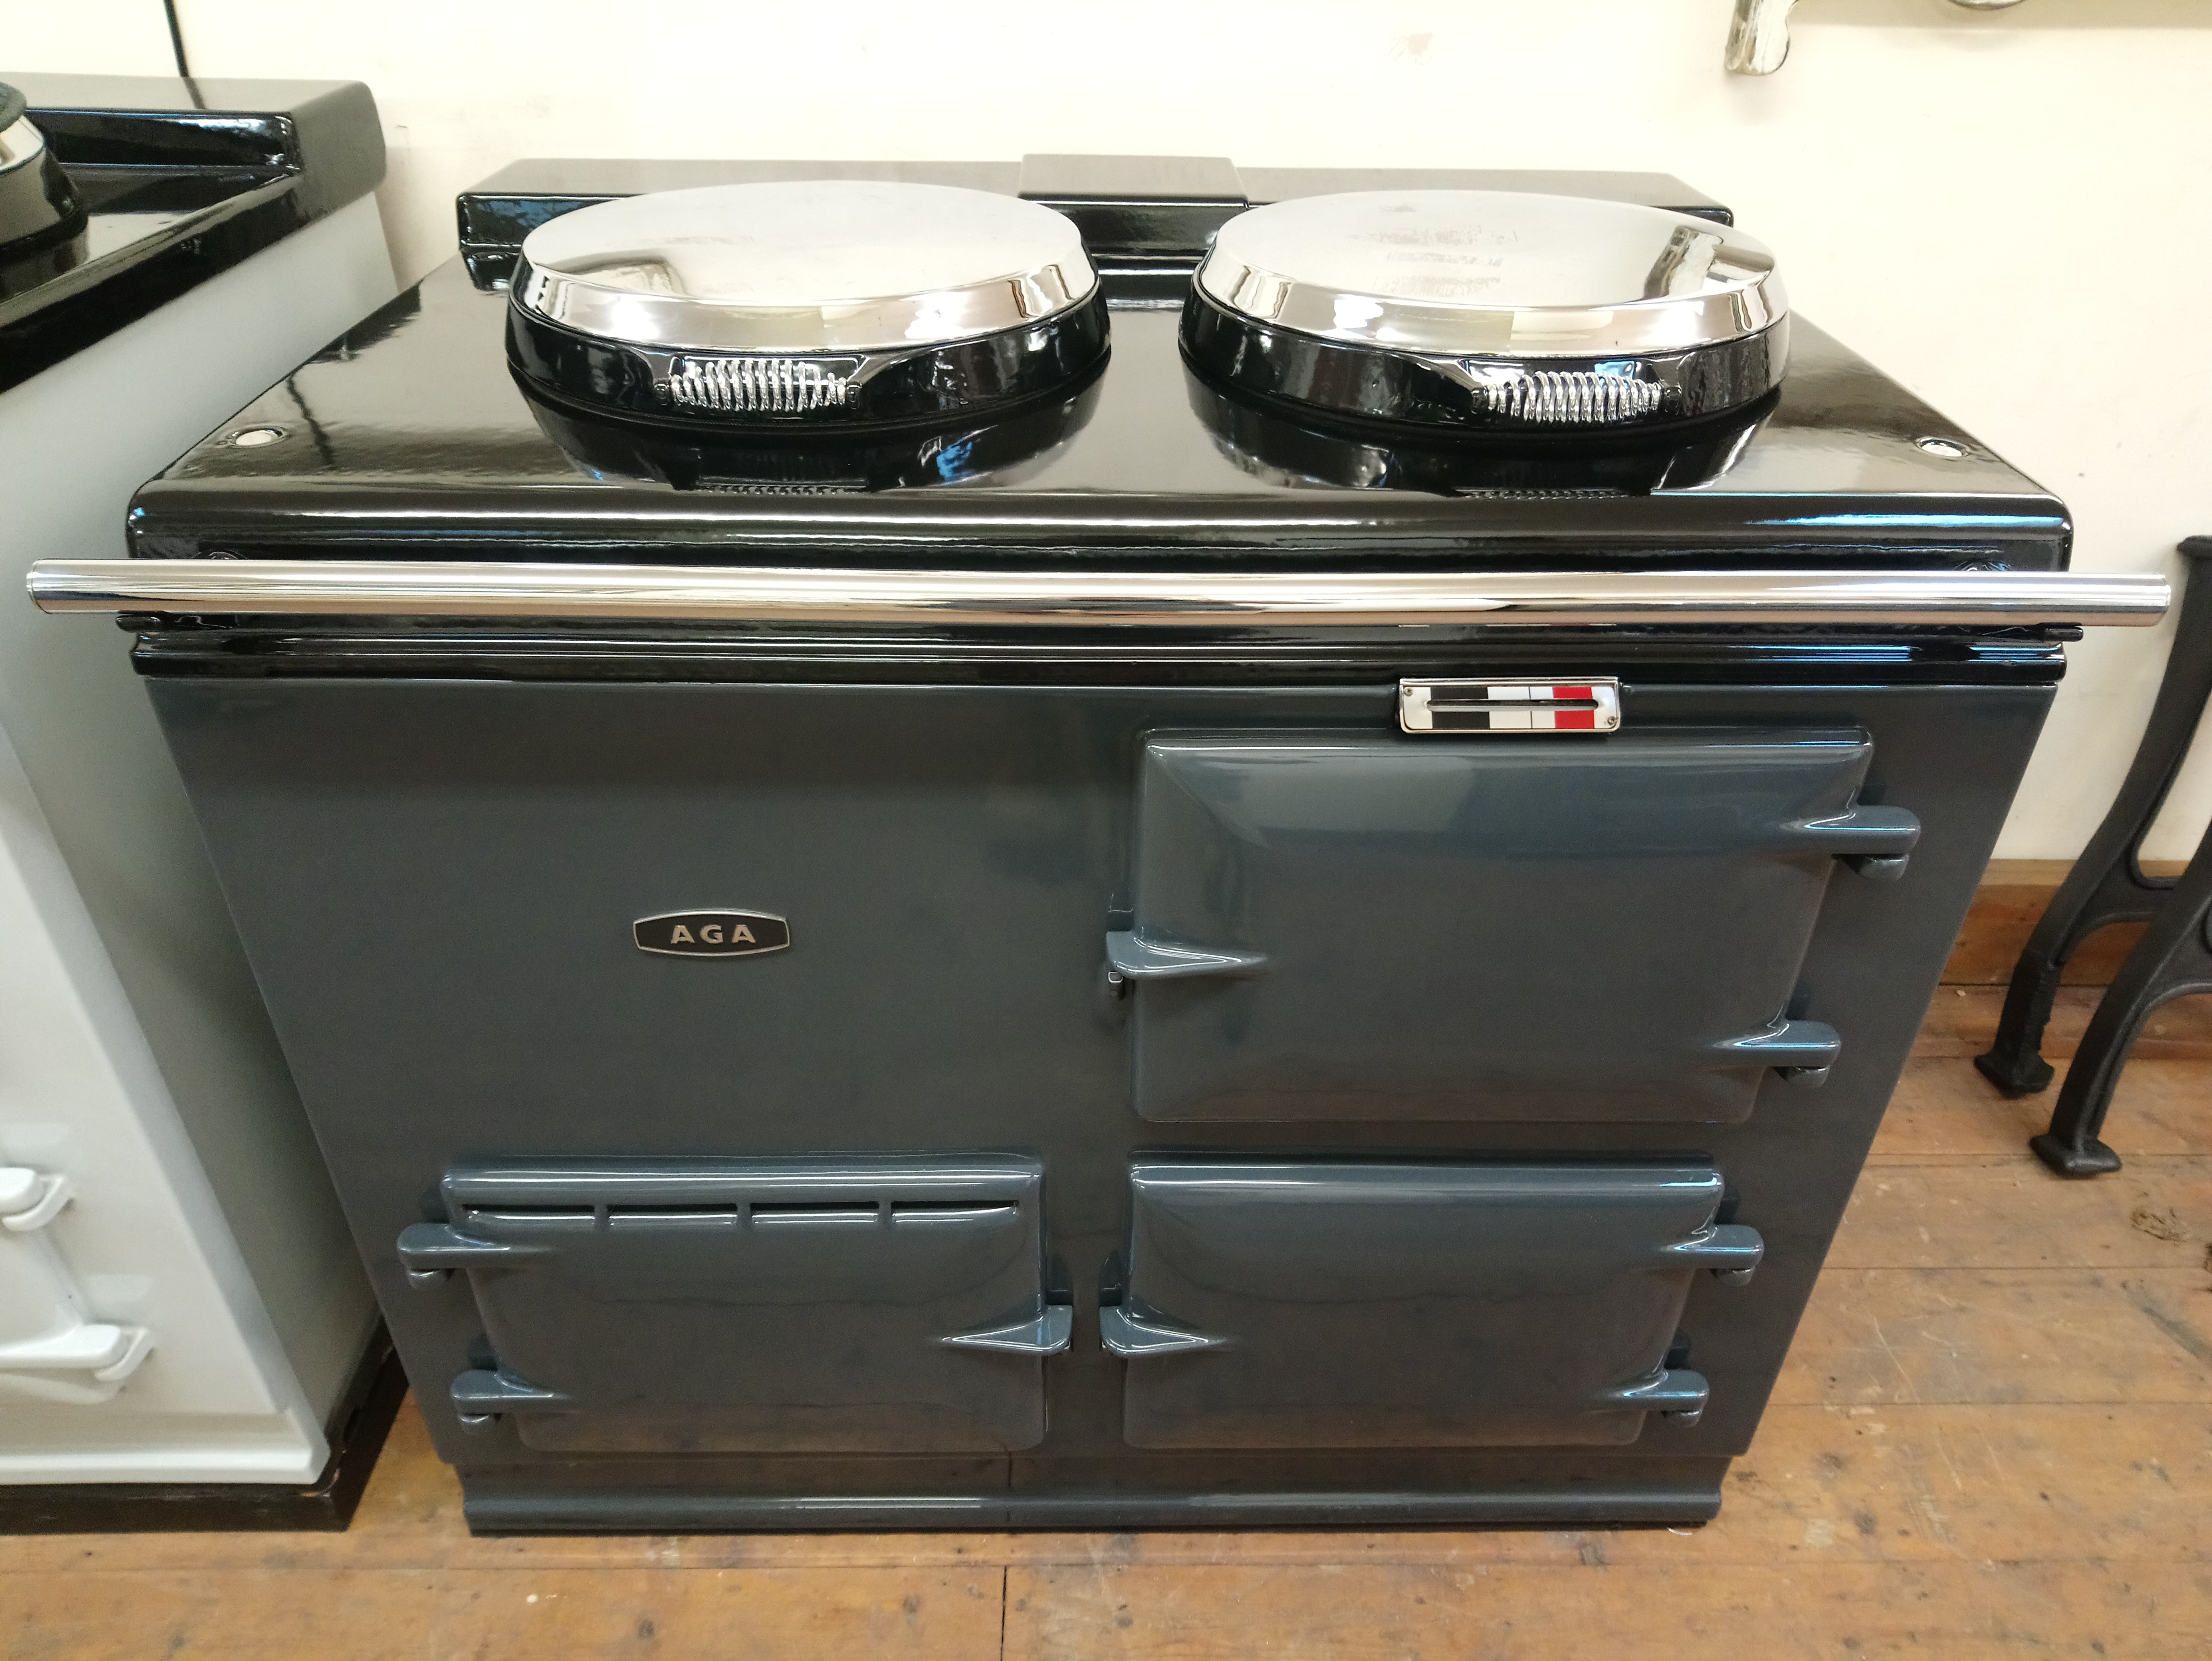 2 Oven Pre 74 Aga Cooker<br>Fully reconditioned Re-Enamelled in Graphite Grey<br><br>Electric<br><br>Installed in a 50 mile radius with 2 yaers guarantee<br><br>Charge for over 50 miles <br>